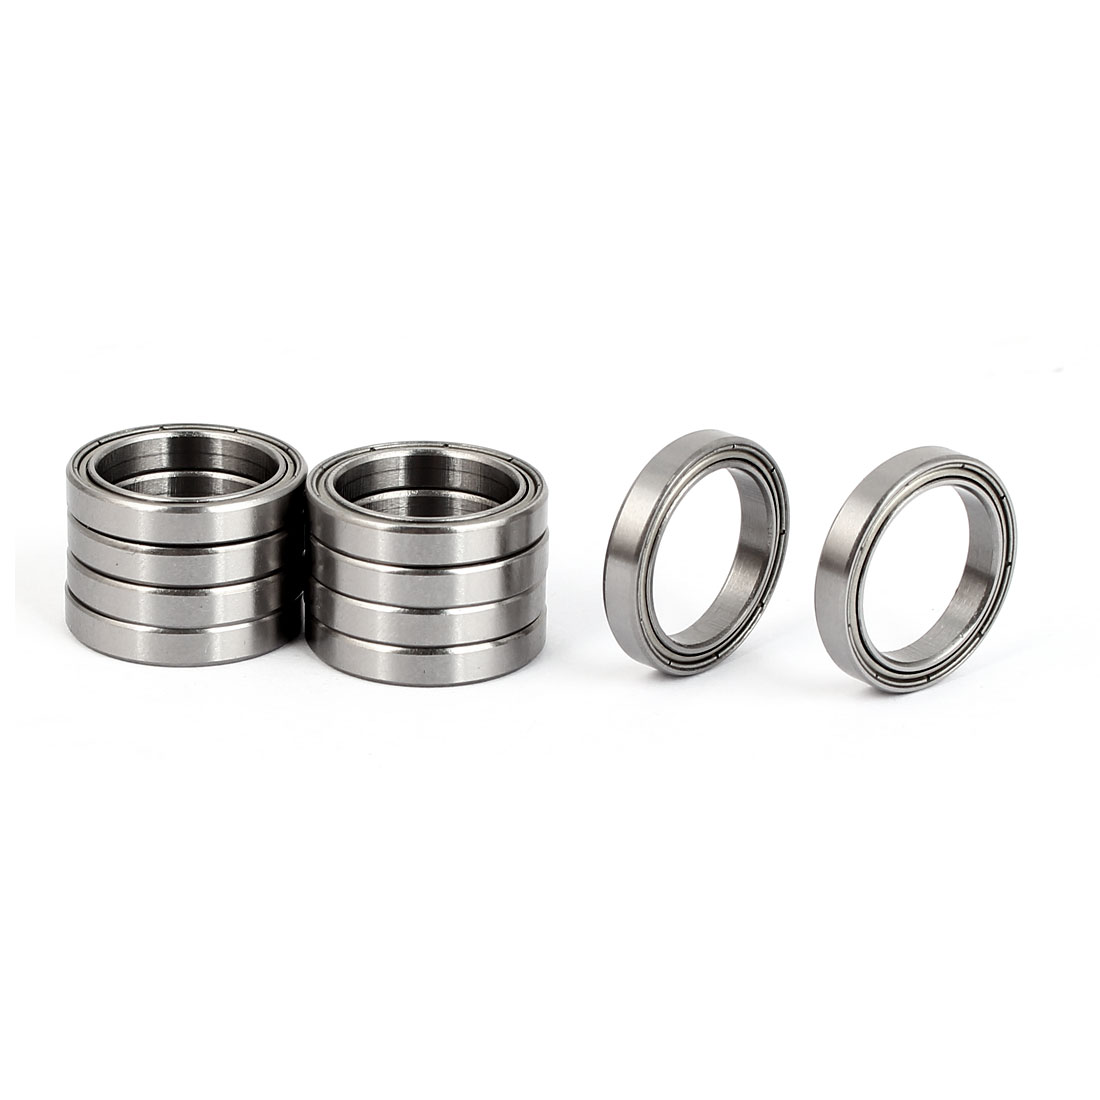 ZZ6701 Deep Groove Ball Bearing 18mm OD 12mm Bore Diameter 10pcs